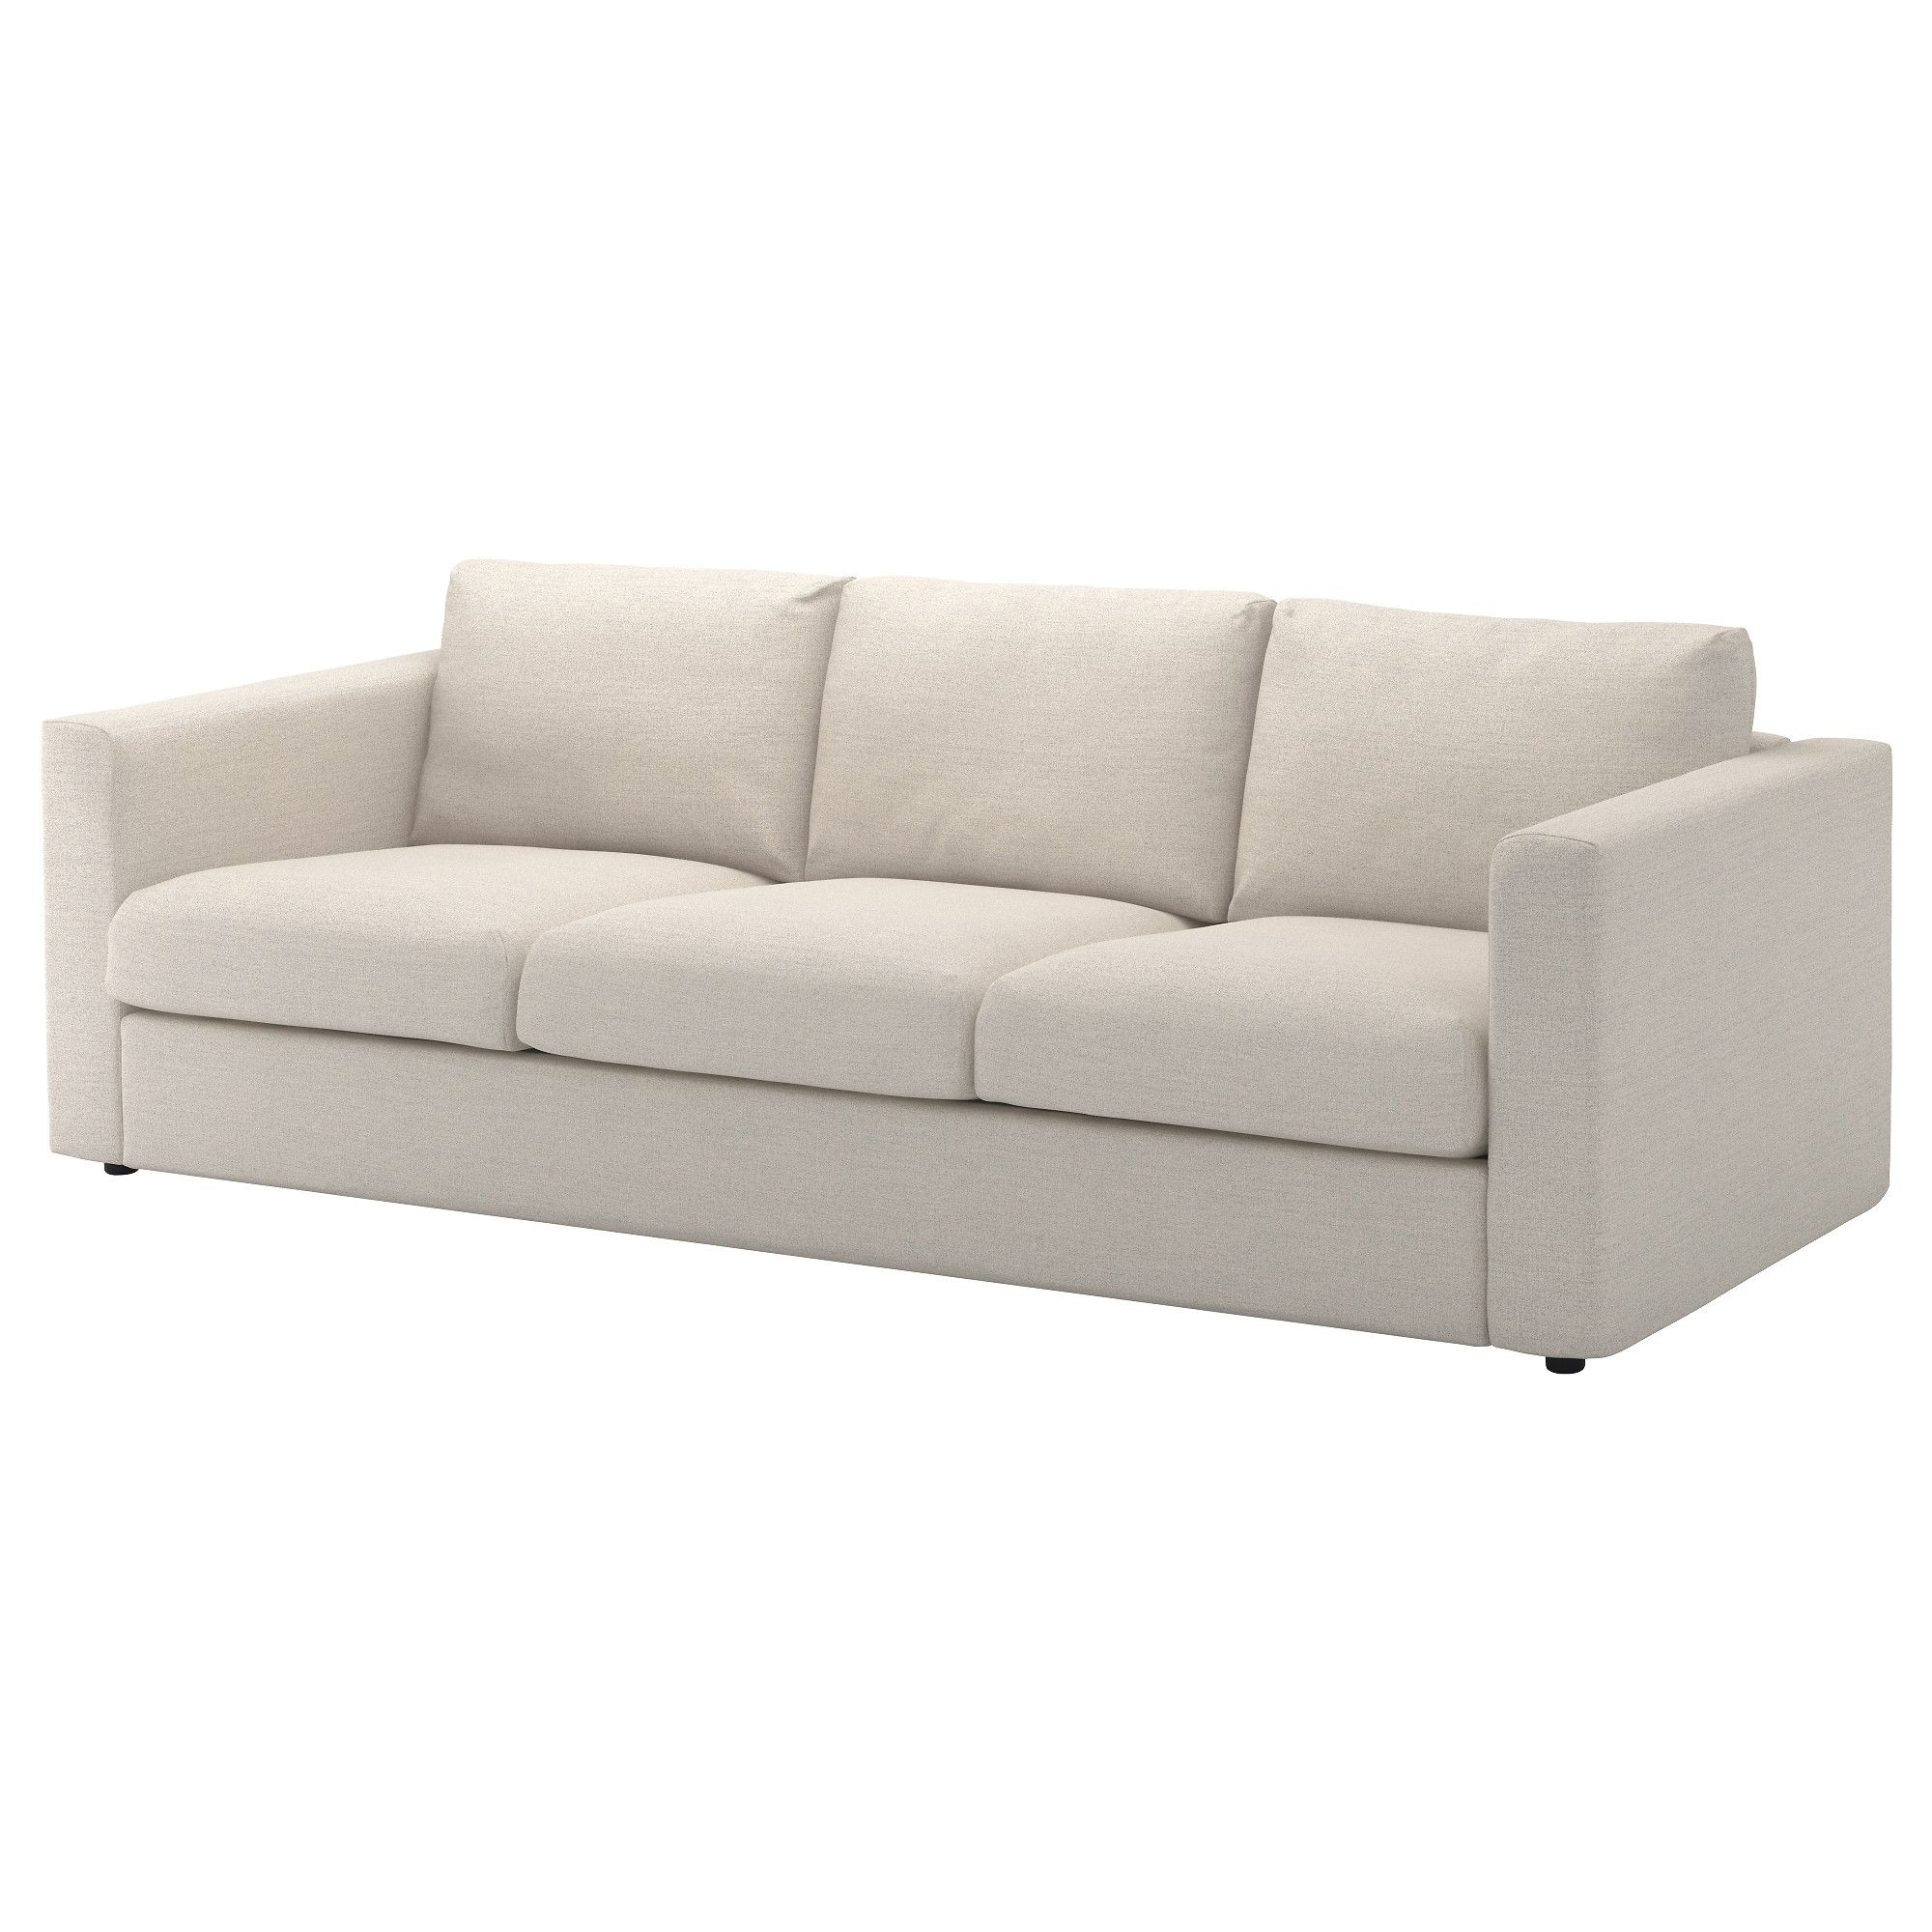 VIMLE Sofa Gunnared medium gray